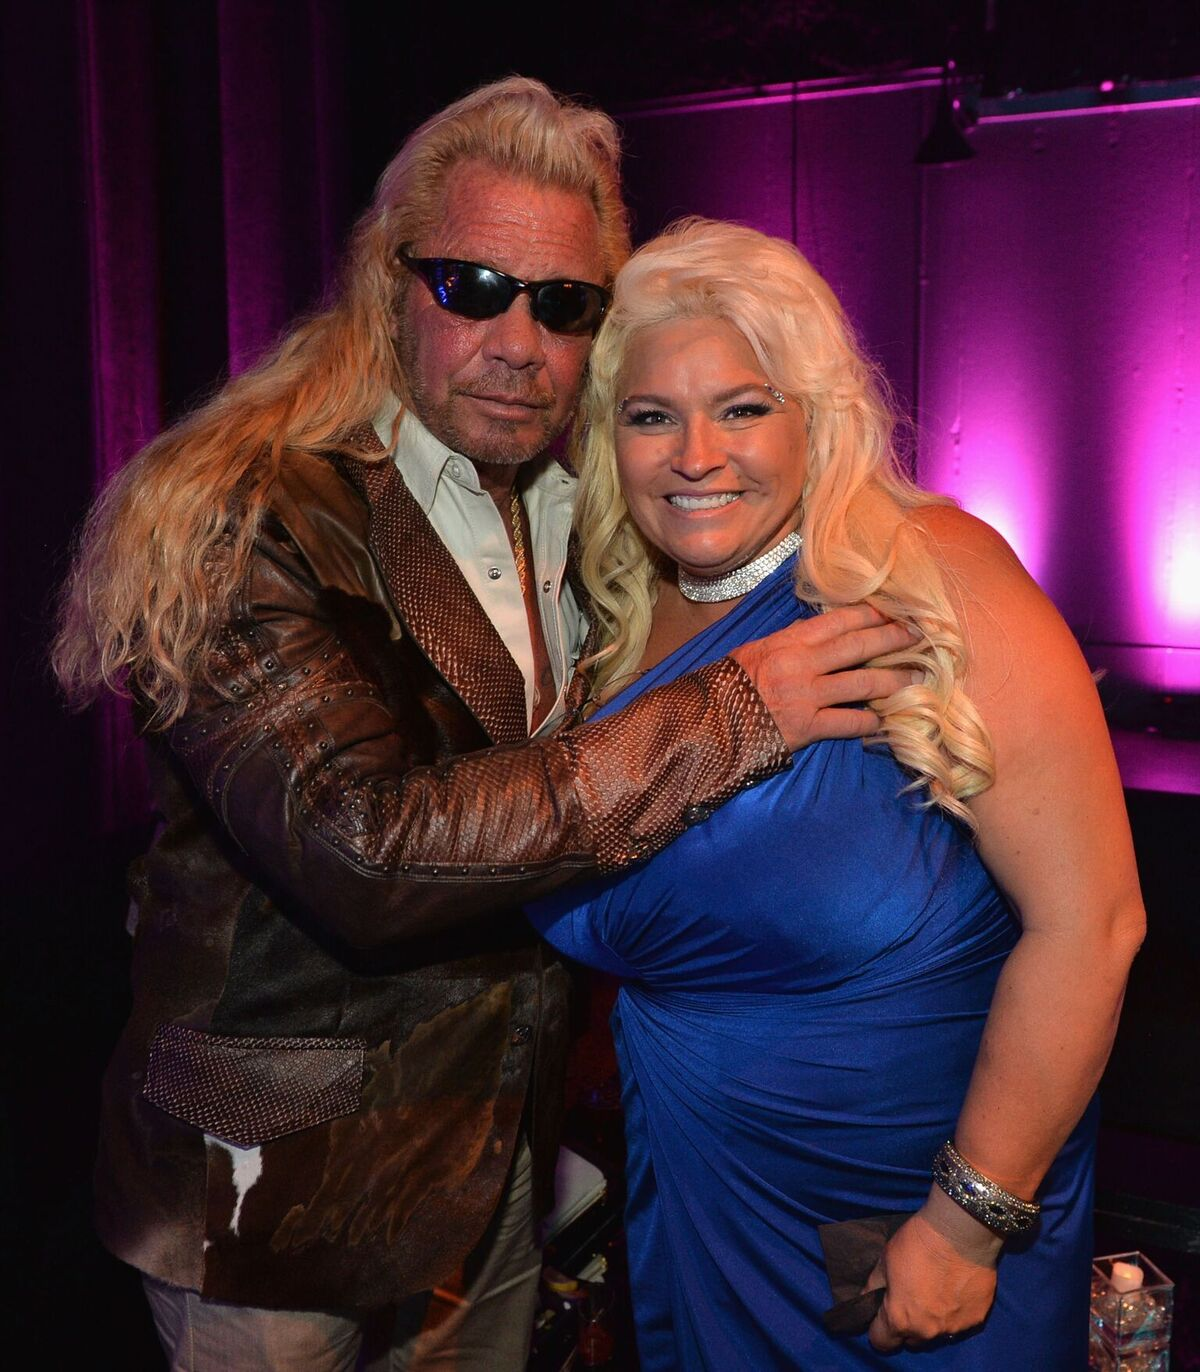 Duane Dog Lee Chapman and Beth Chapman attend the 2013 CMT Music Awards after-party. | Source: Getty Images